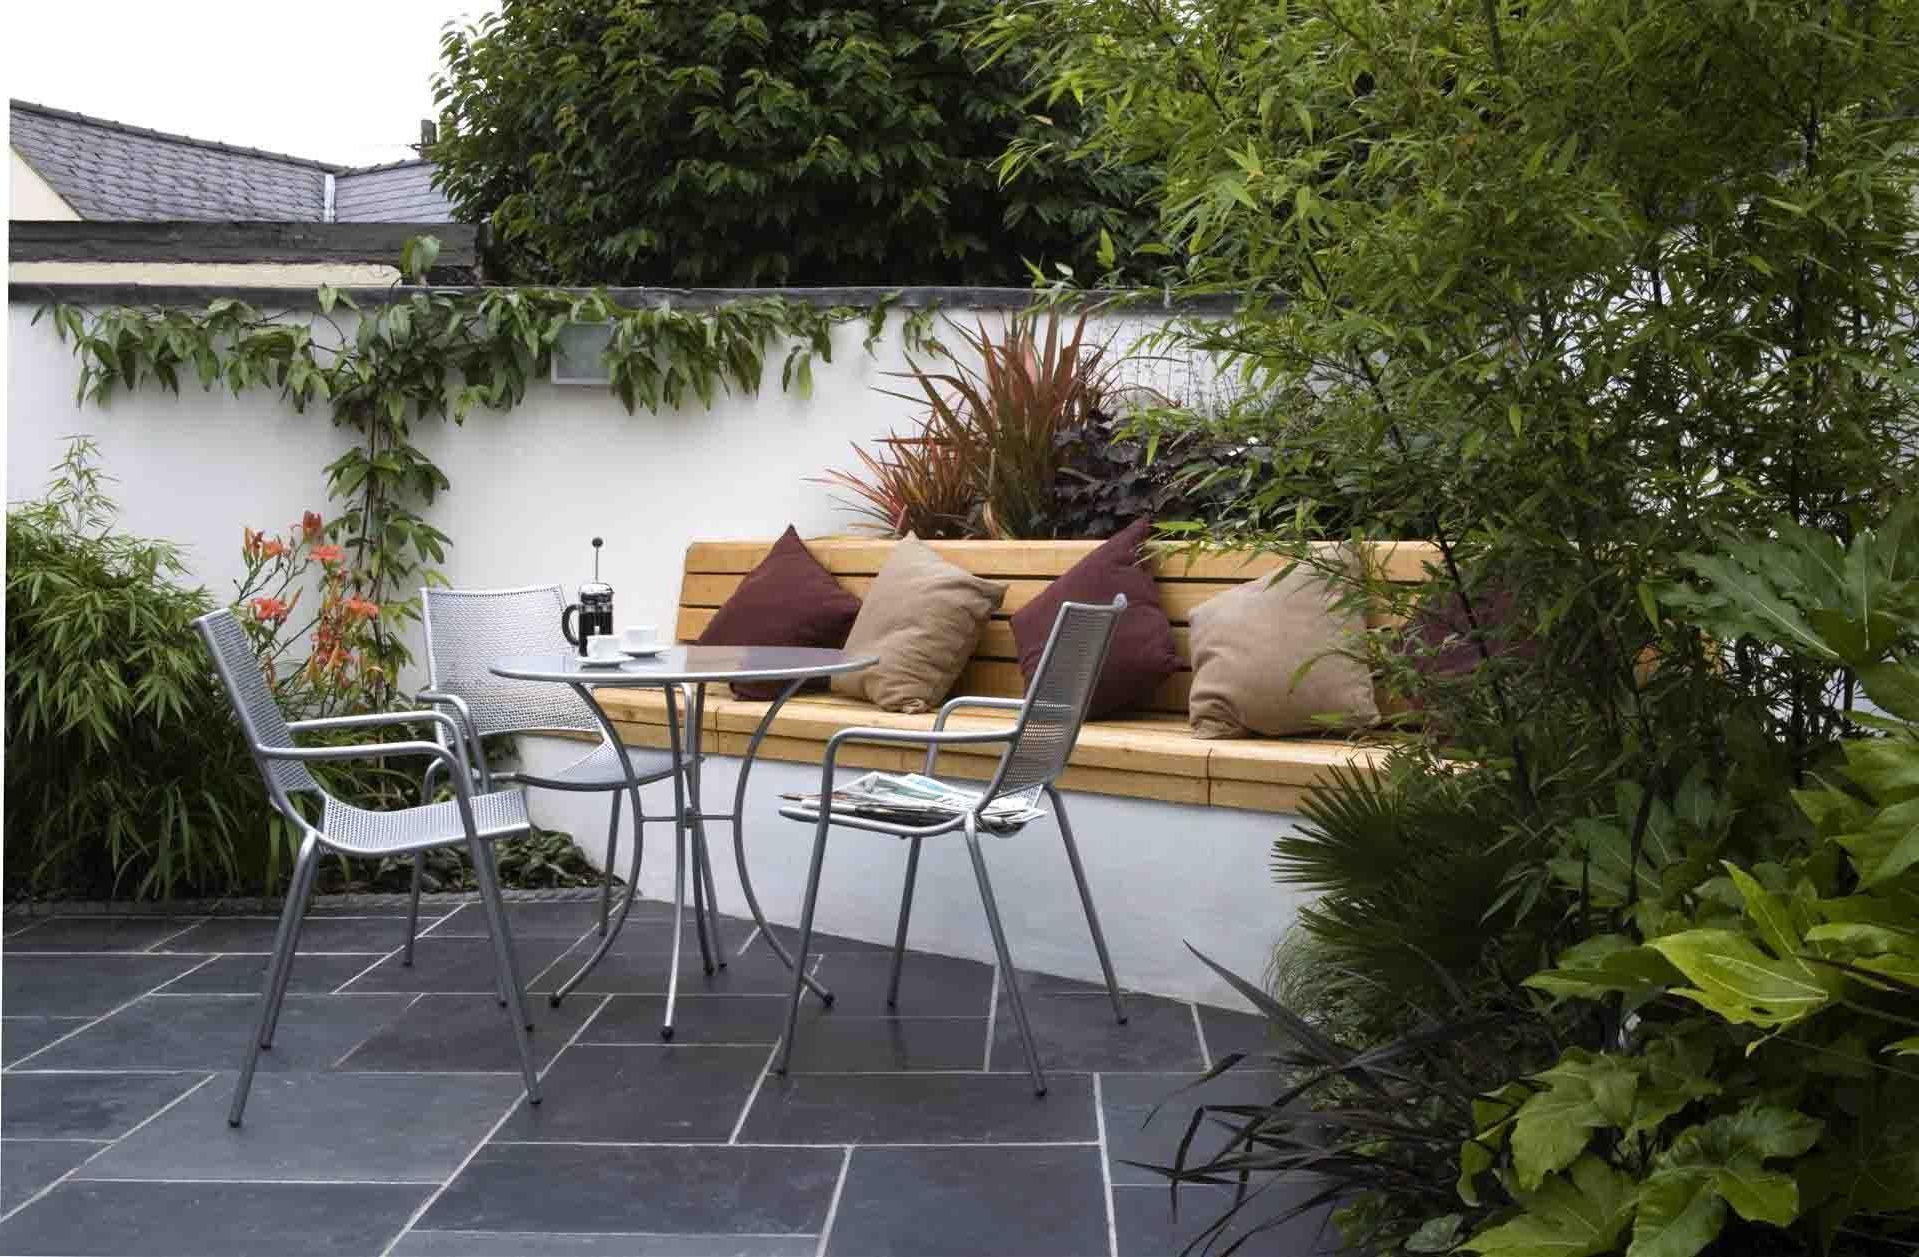 Garden seating ideas outdoor seating ideas garden for Contemporary seating